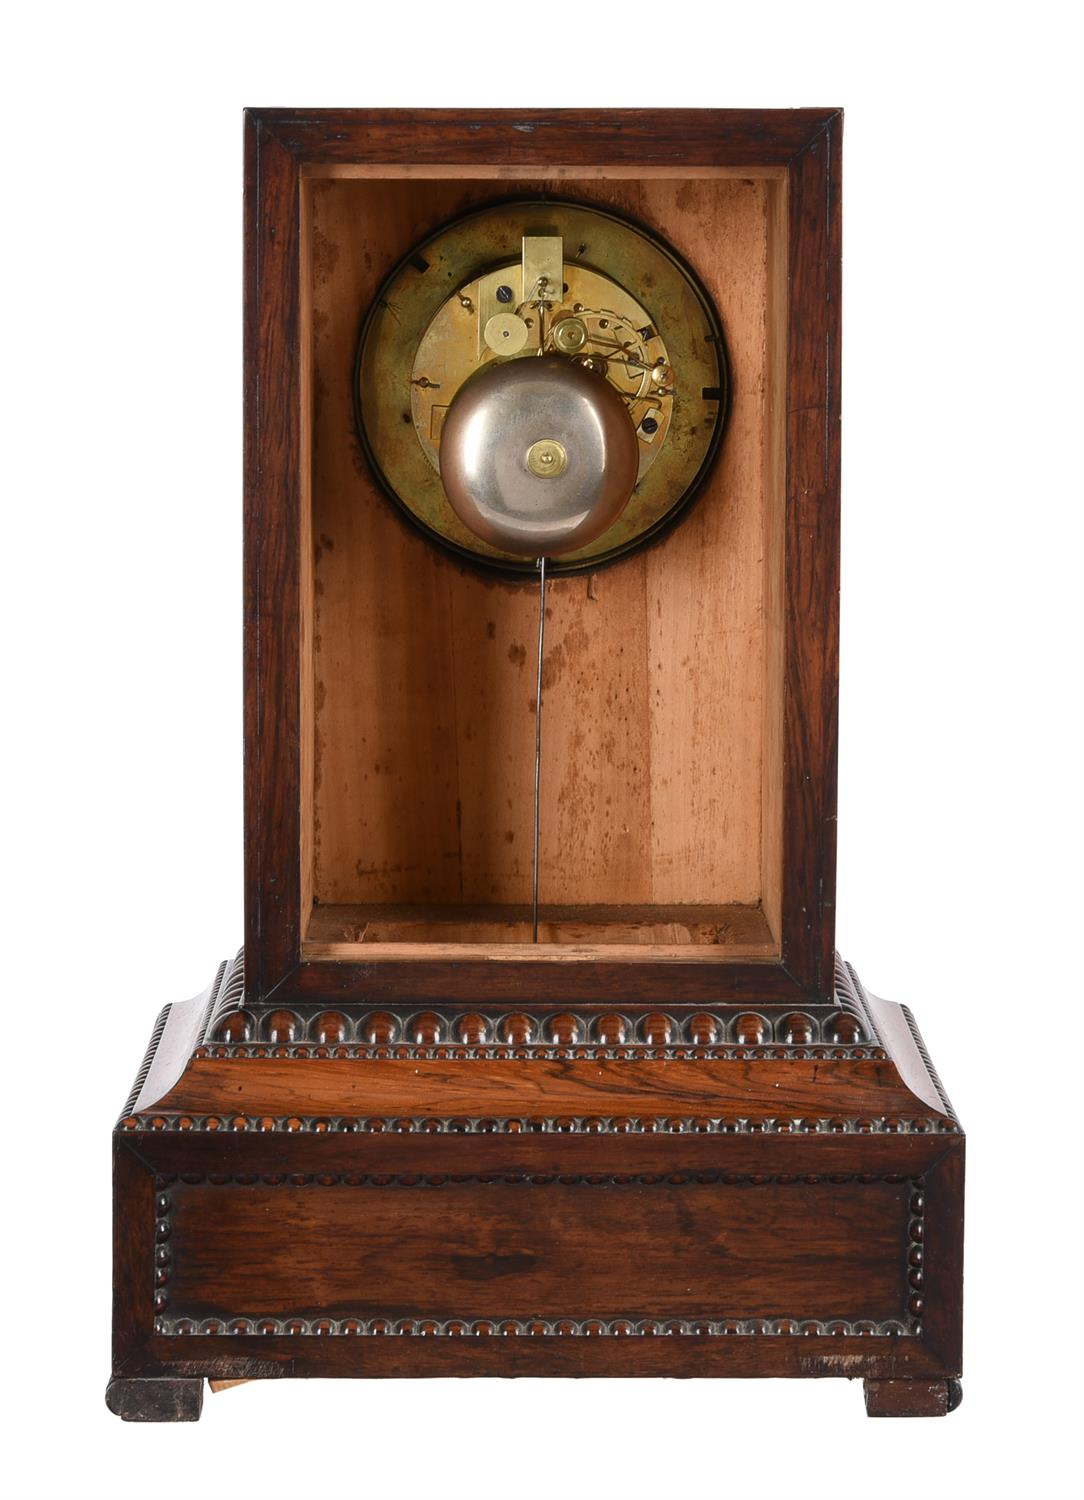 Y A French Louis Philippe rosewood mantel clock and wall bracket - Image 2 of 2